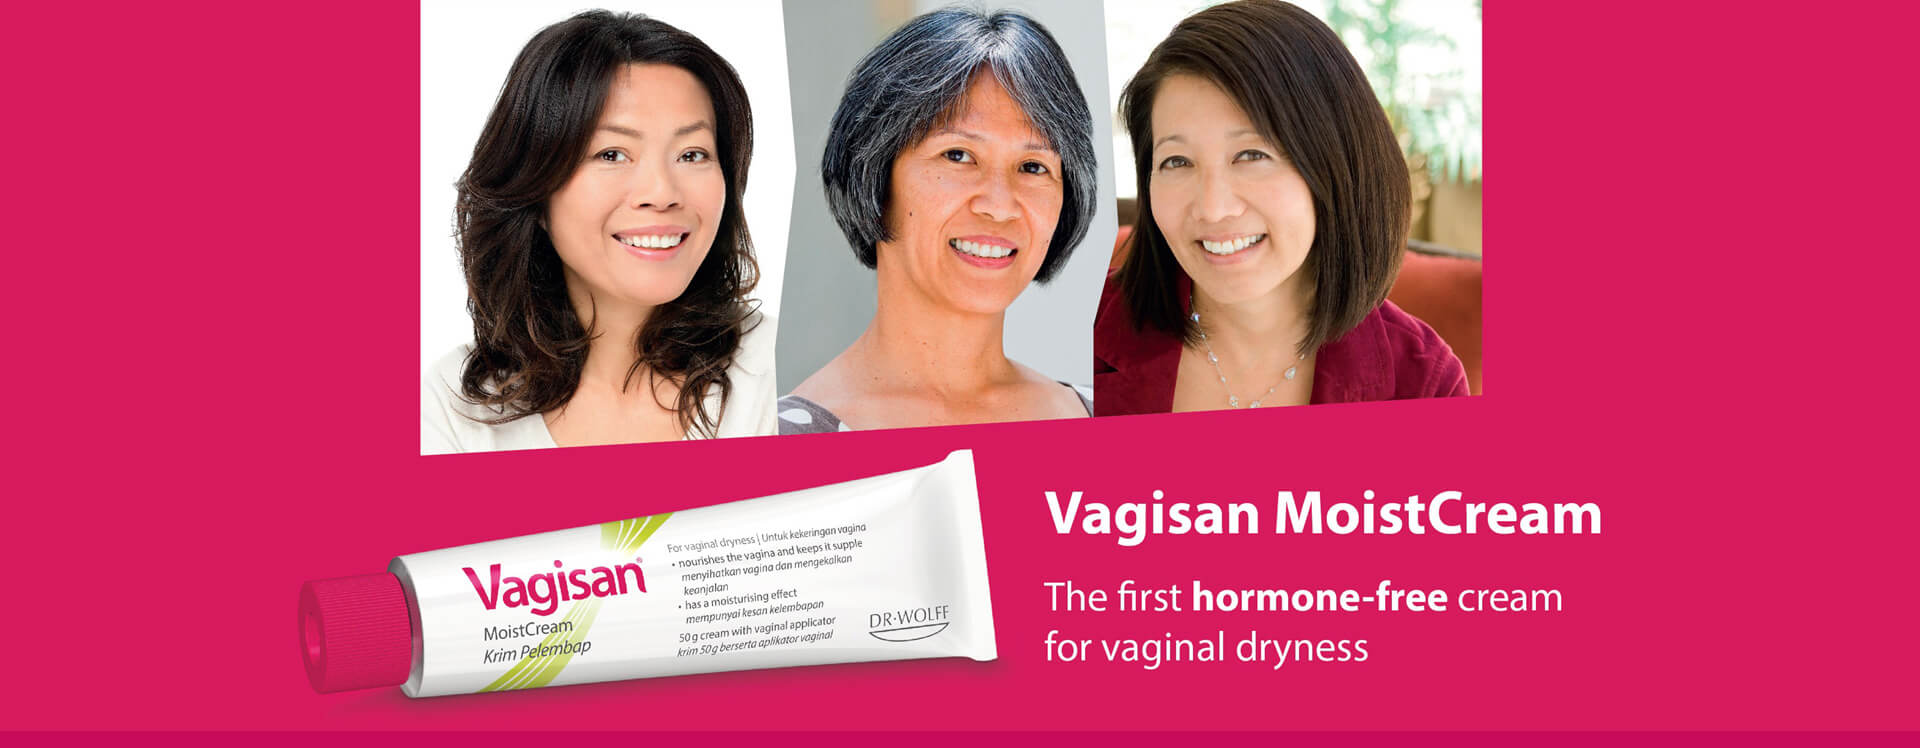 The first hormone-free cream for vaginal dryness